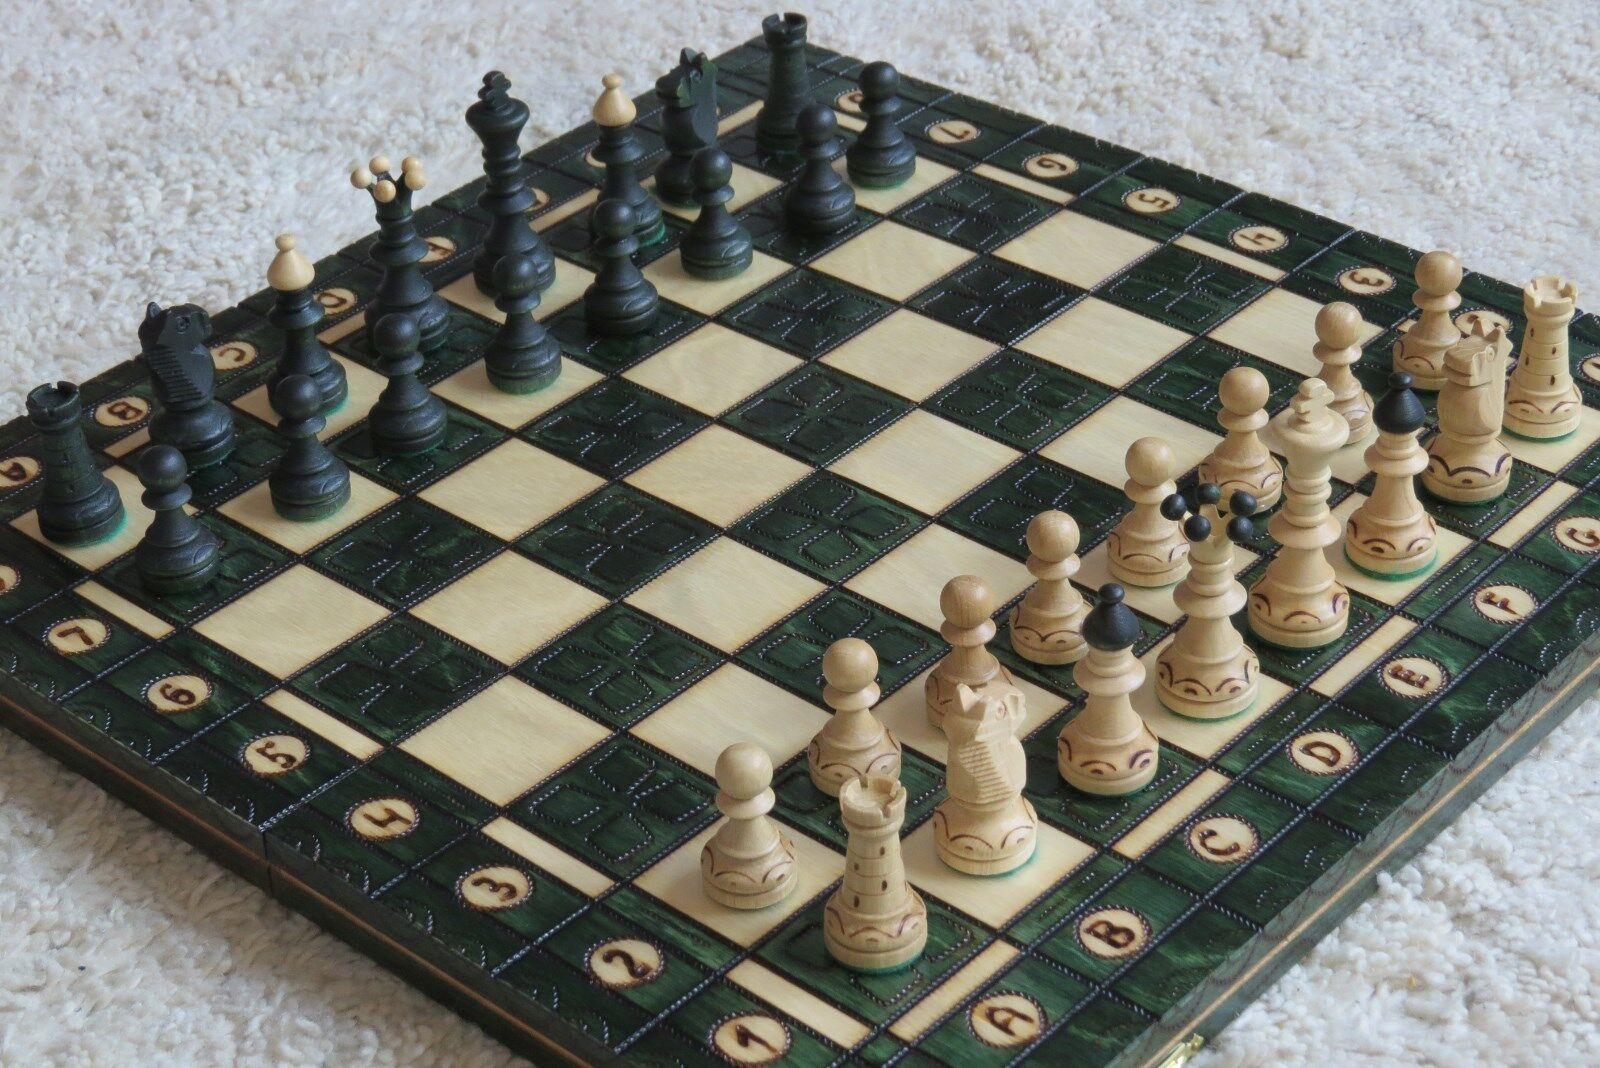 Chess Great Noble Chess Game Junior Chess Board Wooden Handmade New Green